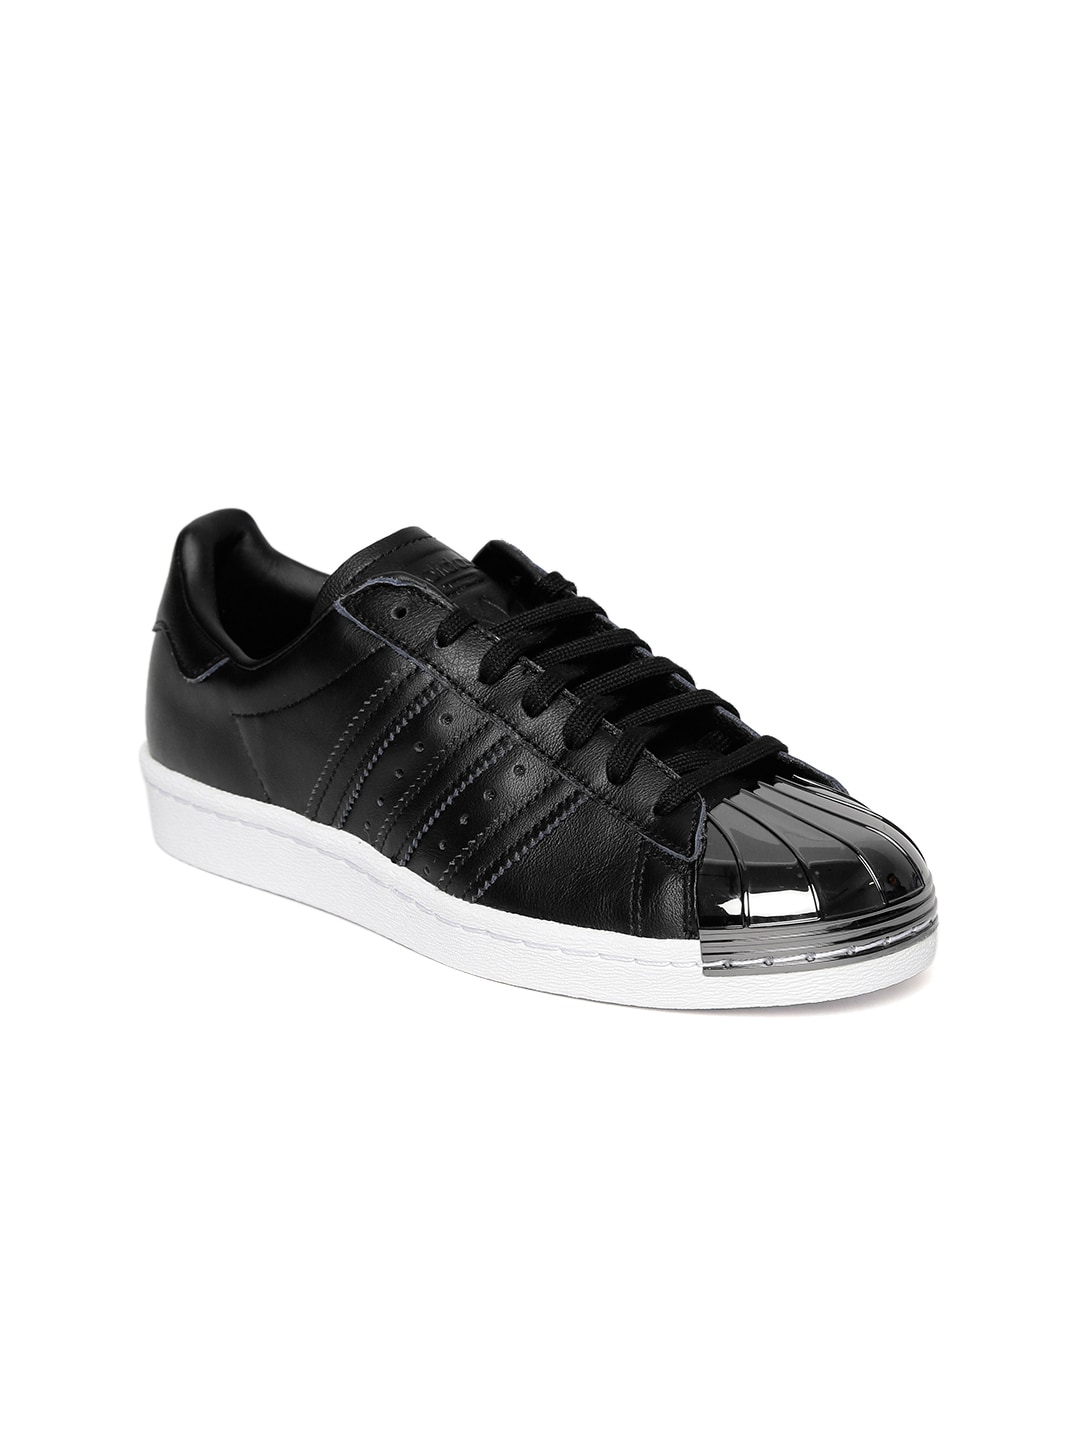 wholesale dealer 98ea1 ace5c Adidas Originals Superstar Shoes - Buy Adidas Originals Superstar Shoes  online in India